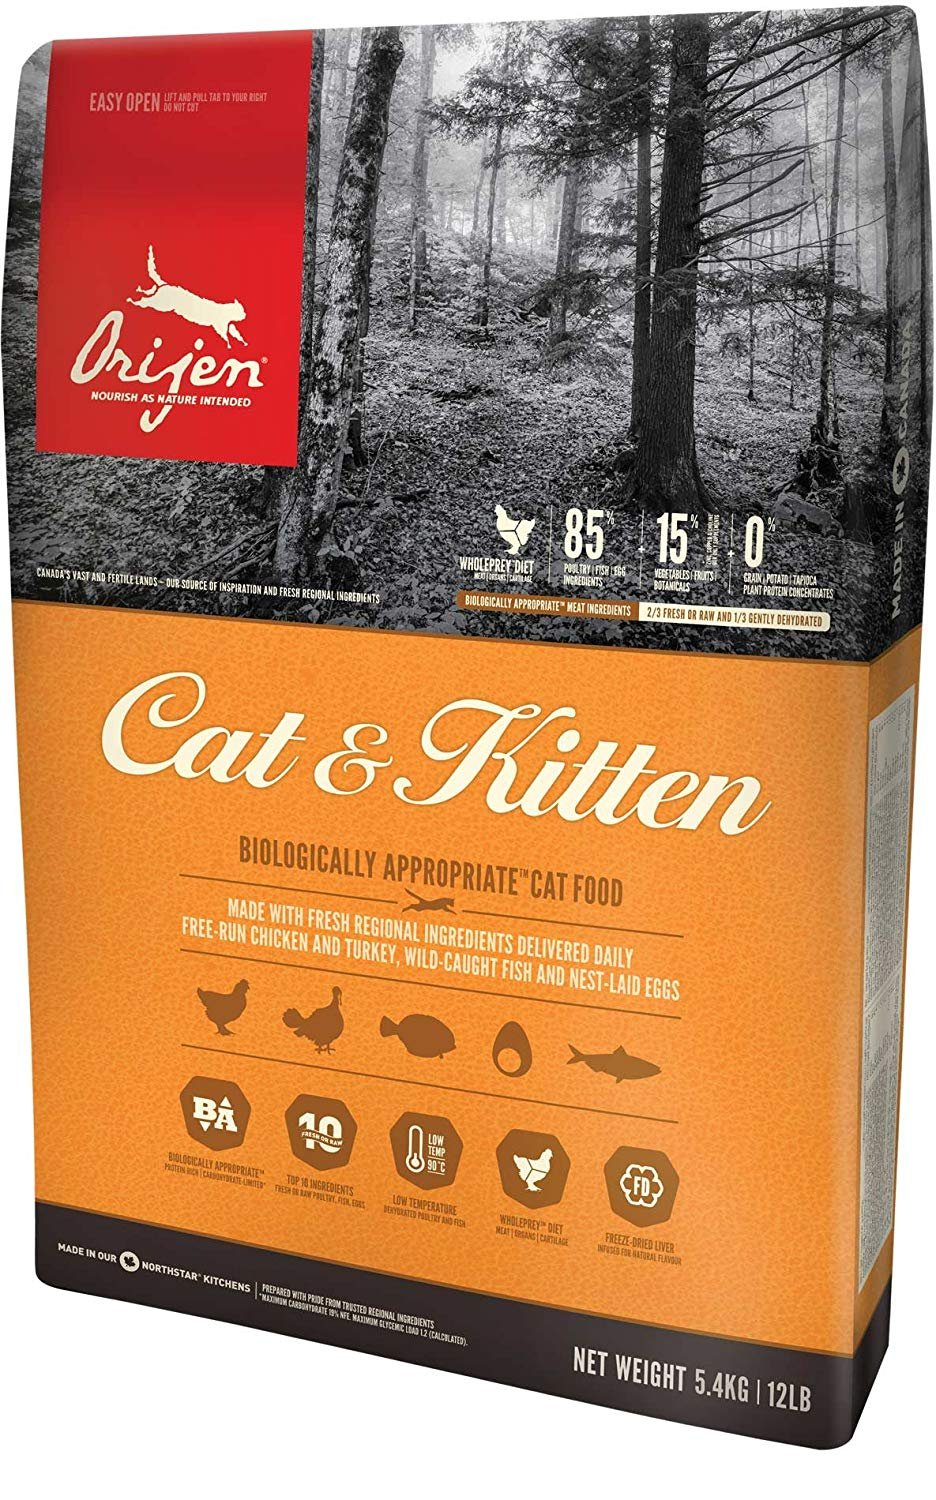 Orijen Cat & Kitten Dry Cat Food 12 LB. Bag. Good for All Stages of Life. (BIOLOGICALLY Appropriate | for All Life Stages) by Orijen